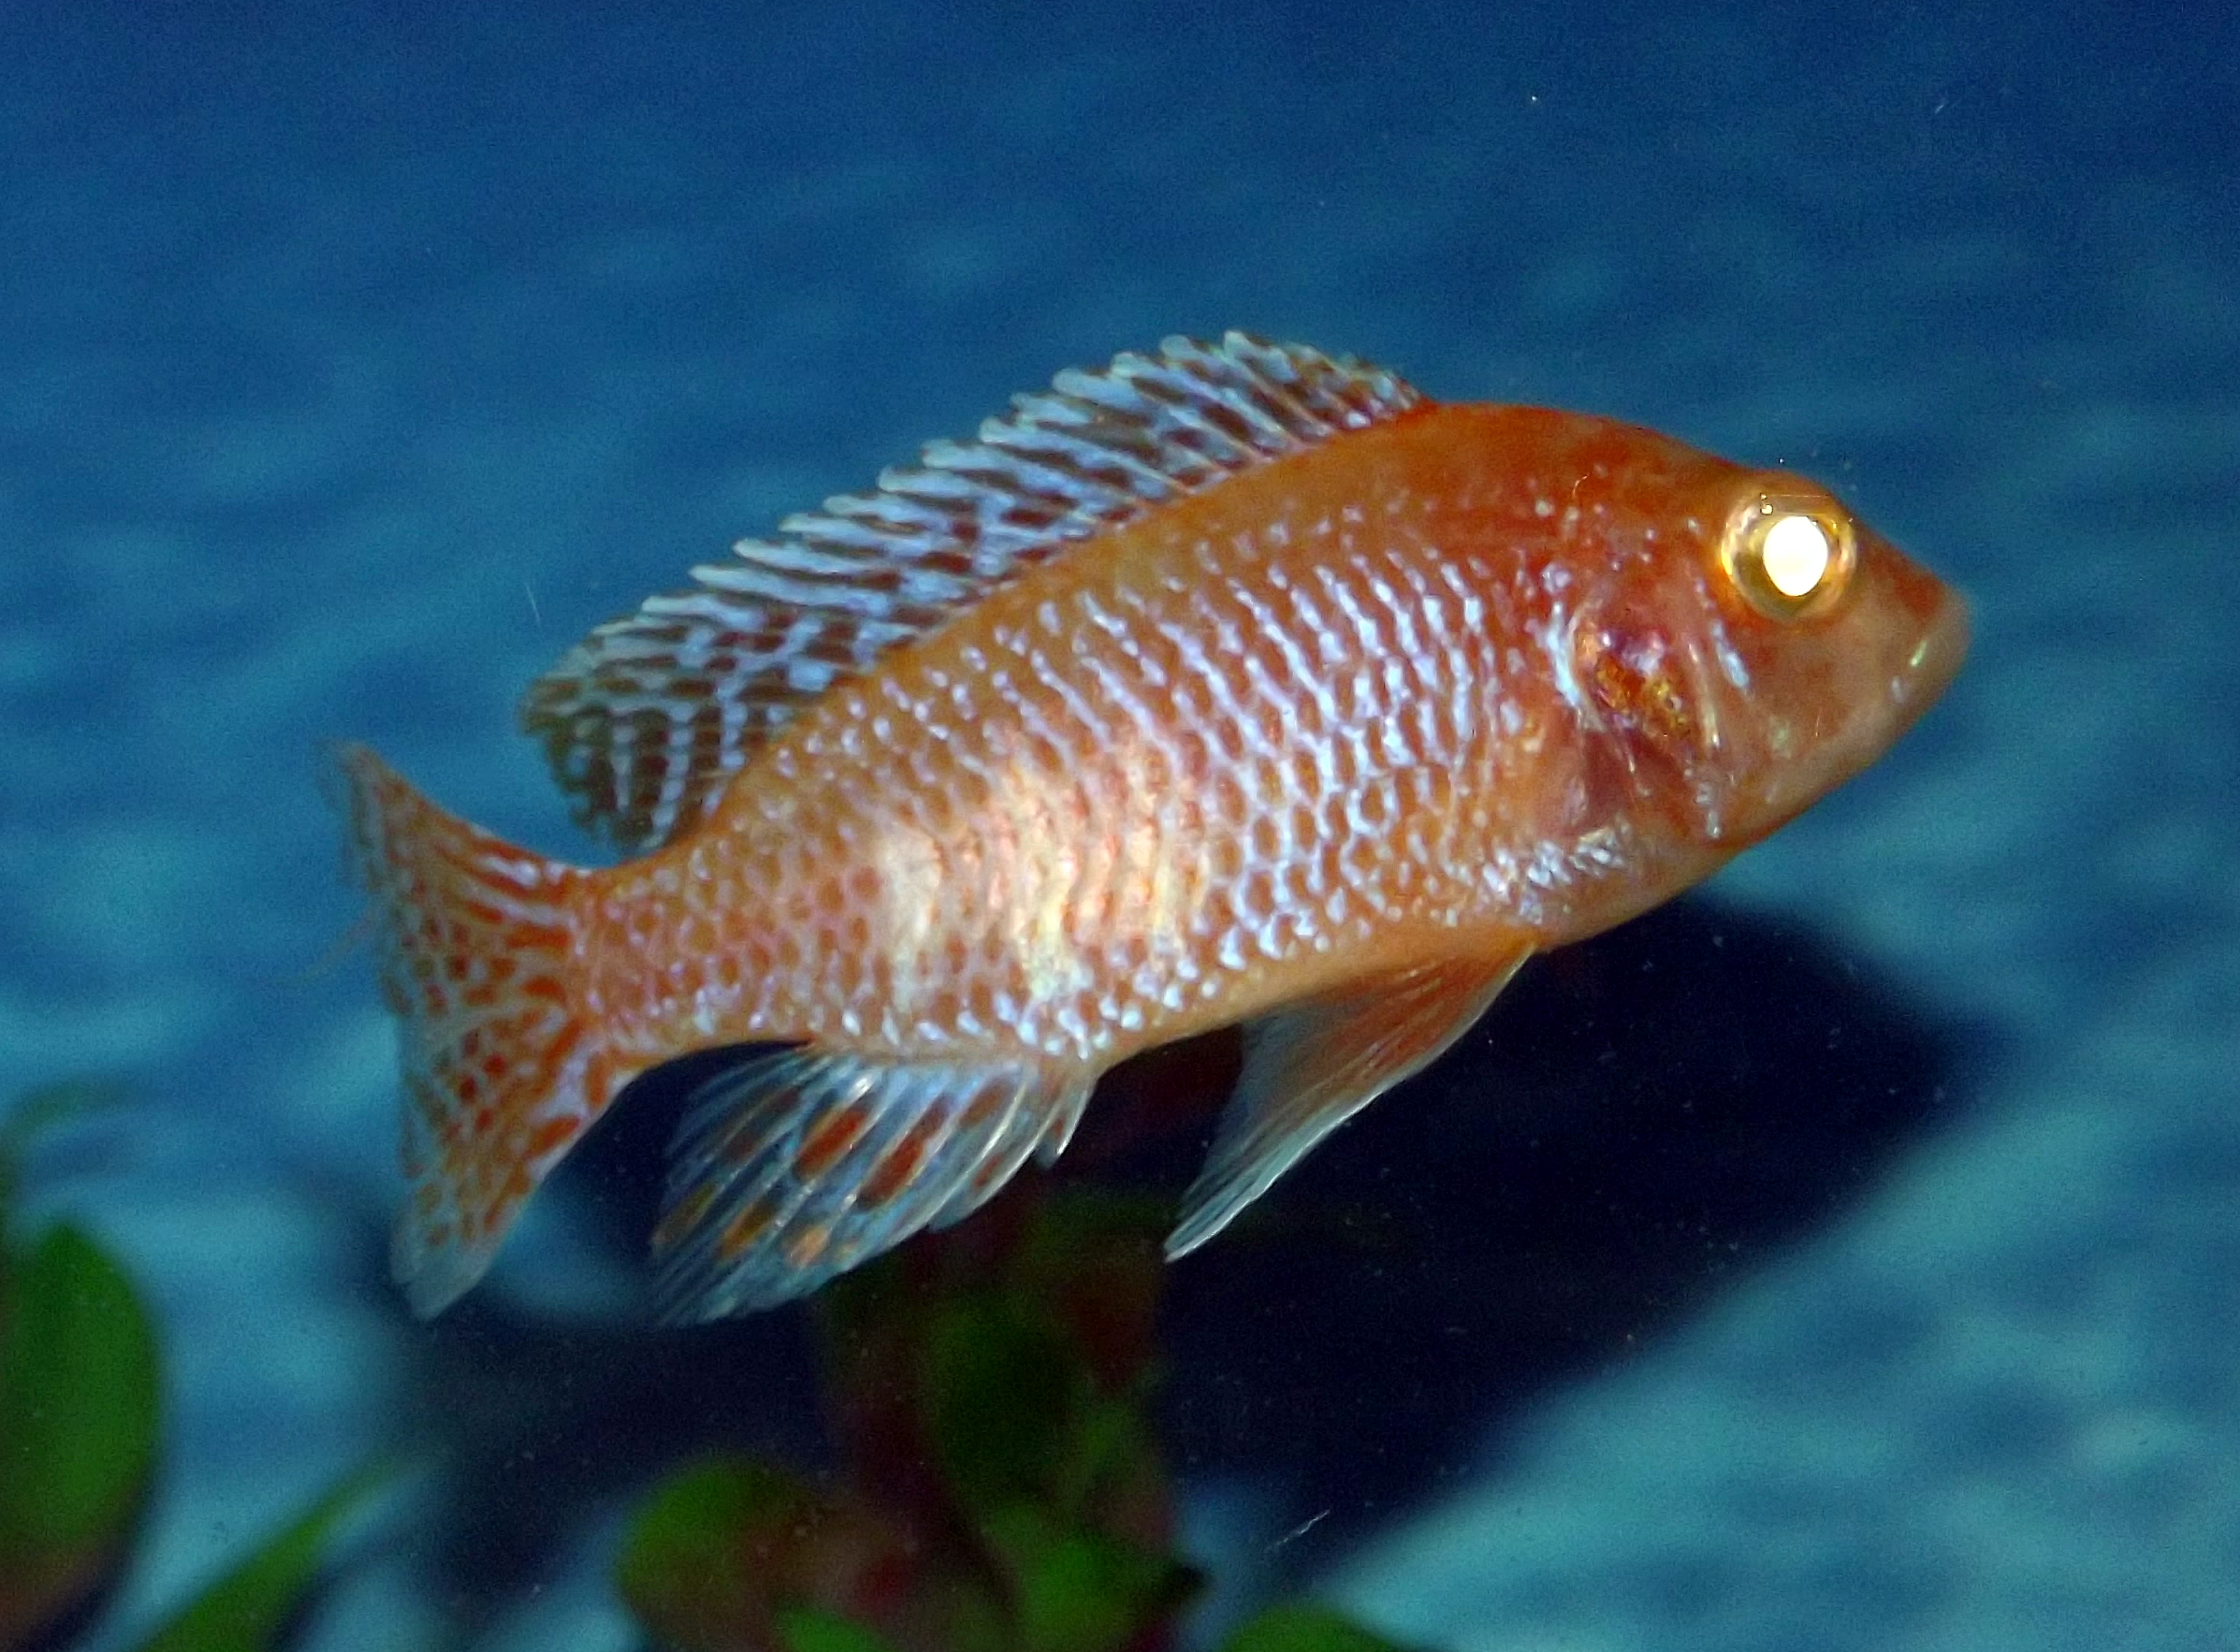 cichlids.com: Albino Strawberry Peacock